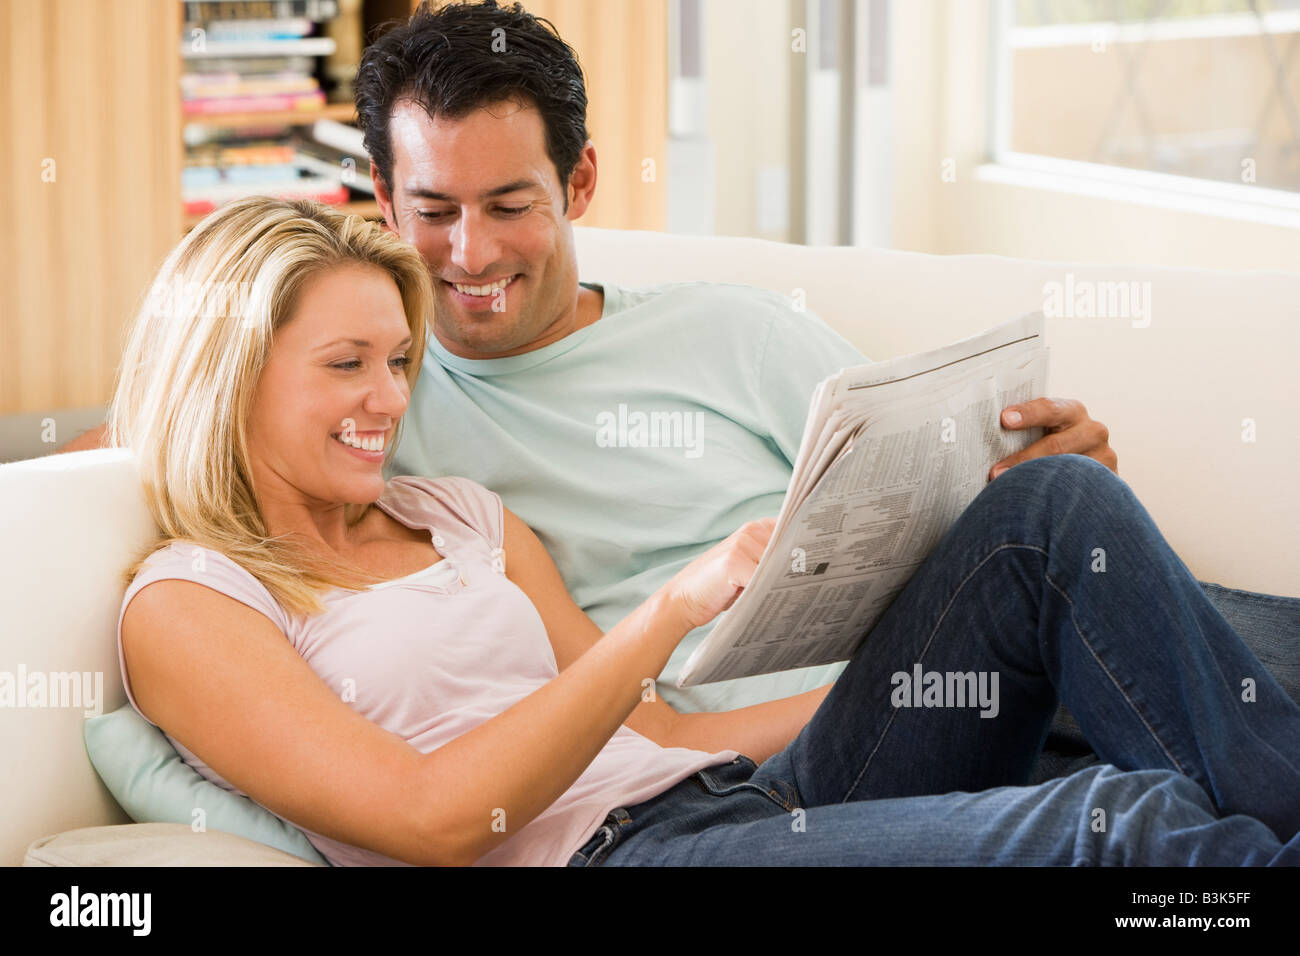 Couple in living room reading newspaper and smiling - Stock Image